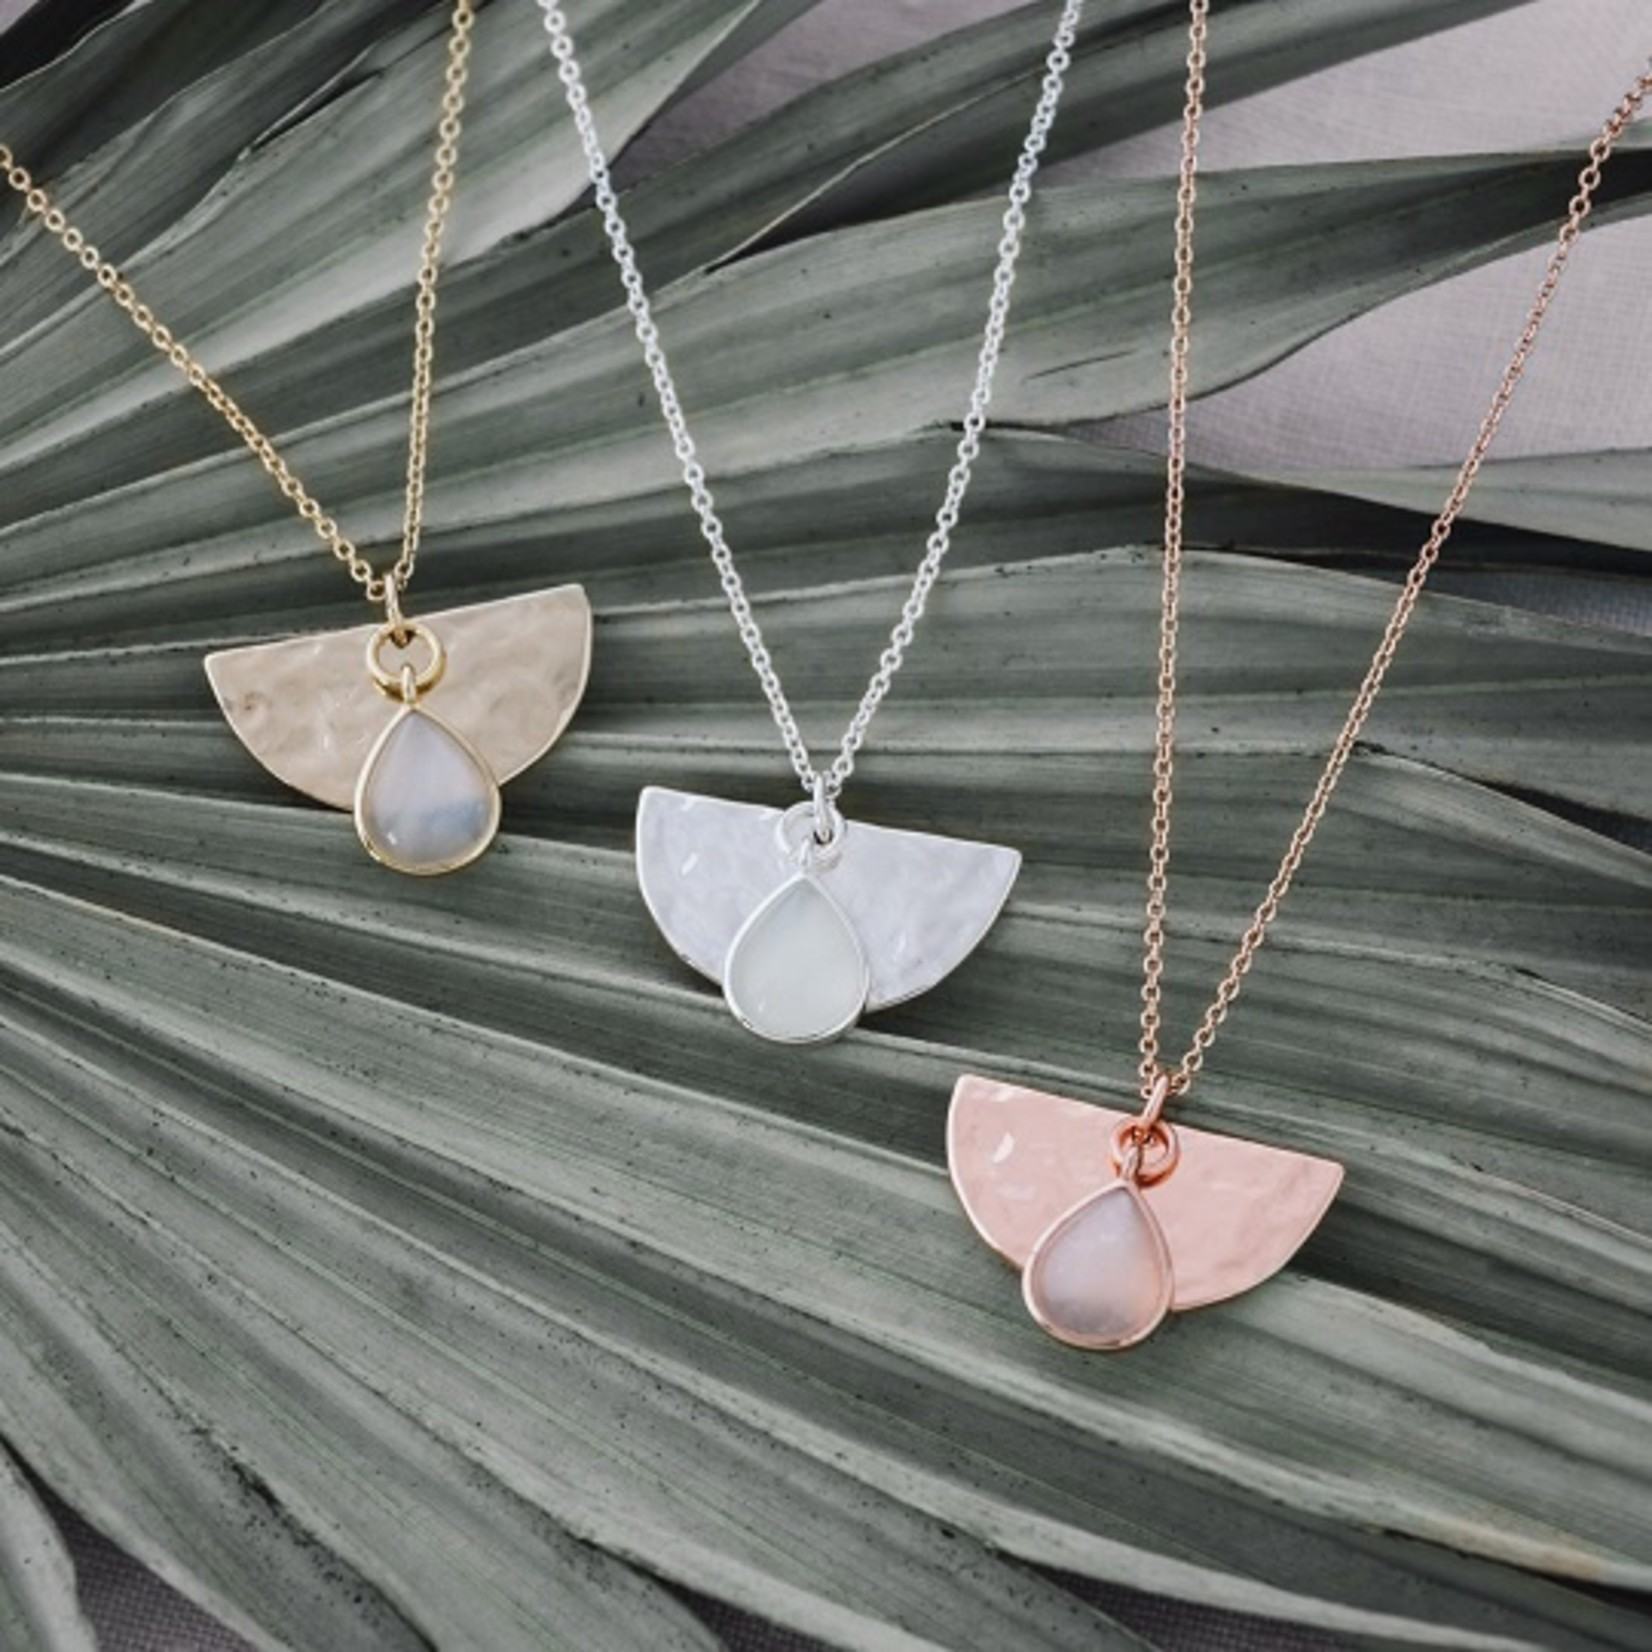 Glee Jewelry ~  Moonstone Blossom Necklace